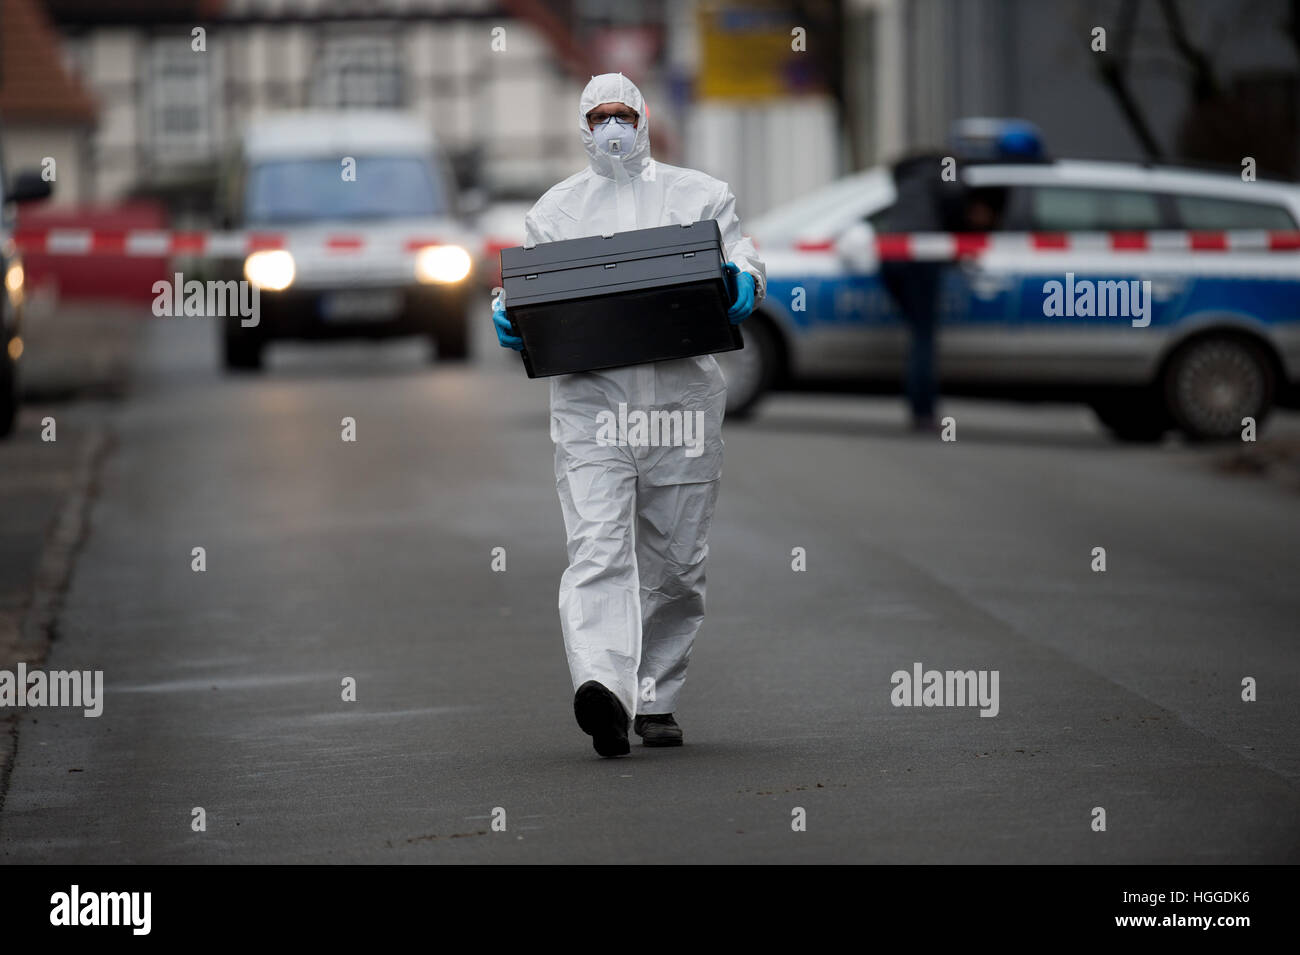 An officer of the crime scene unit at work in Visselhoevede, Germany, 9 January 2017. A 46-year-old man was badly - Stock Image